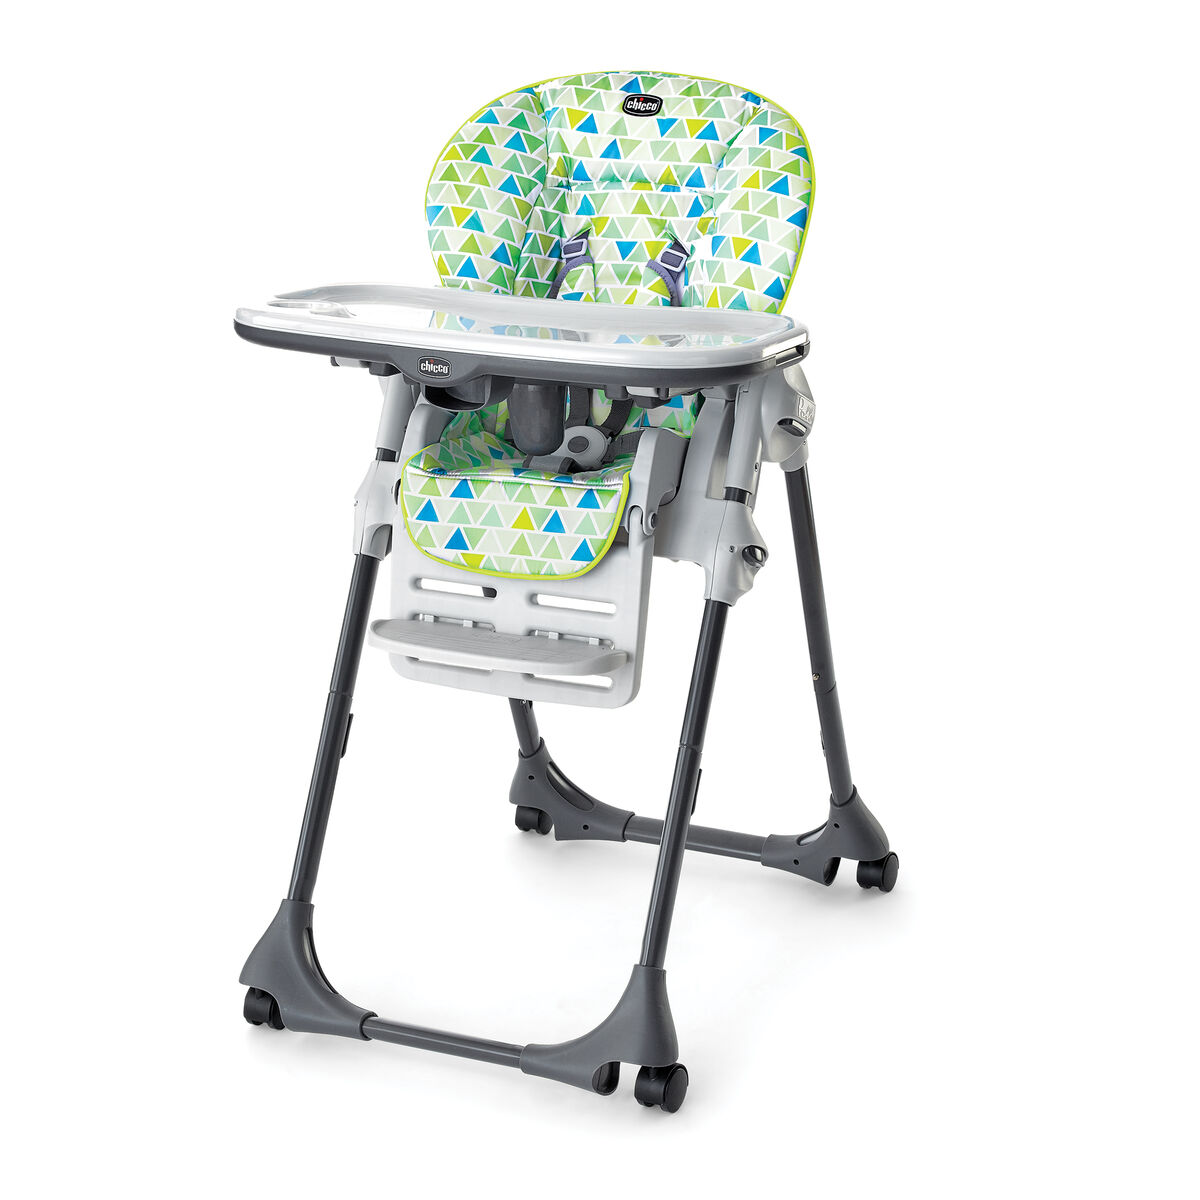 Chicco Polly High Chair / REPLACEMENT WASHABLE TRAY LINER - EUC Replace the removable Polly High chair tray liner for easy serving and quick clean-up Can be quickly ad easily fixed / removed from the Polly High Chair tray.